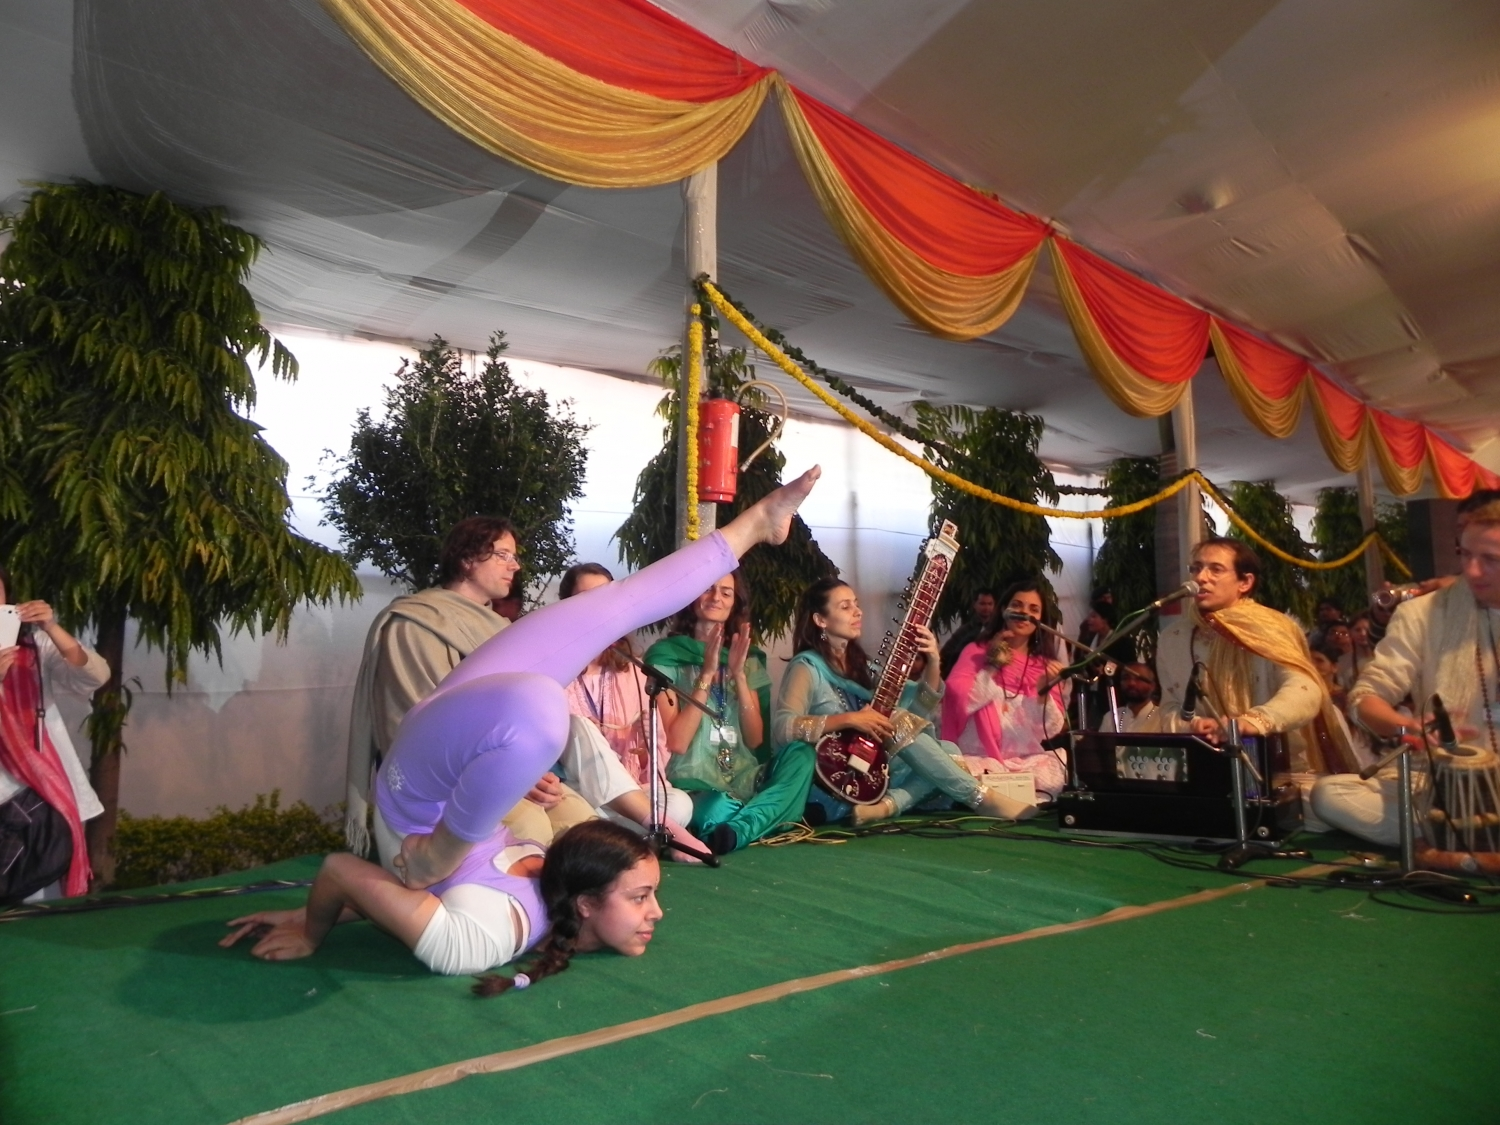 International Yoga Festival - rshikesh, Índia - 2013, Março